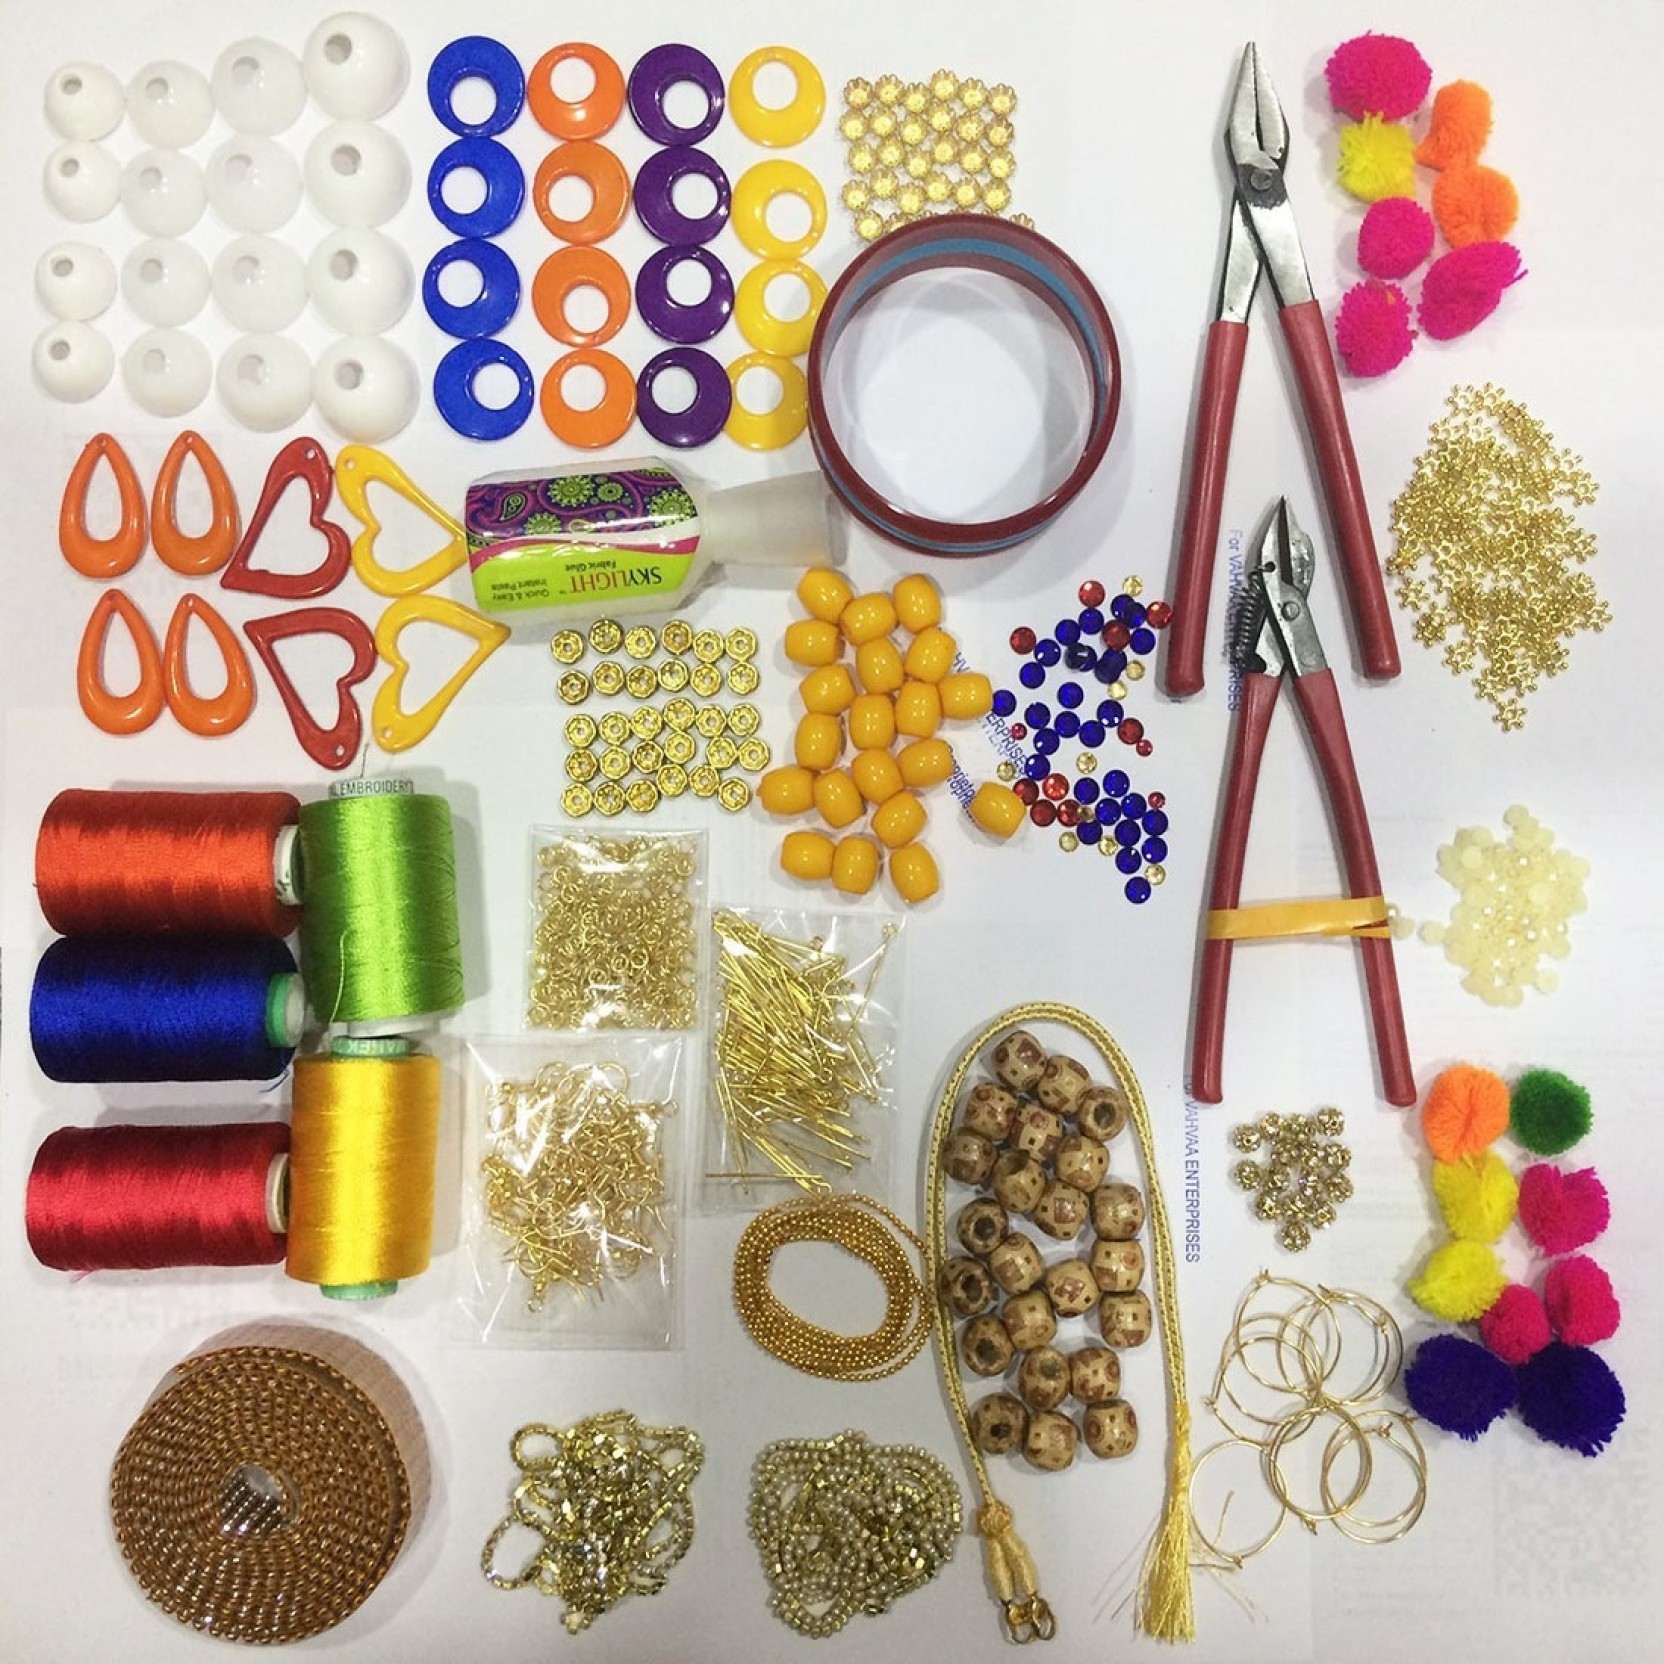 d541f490a8 Valuebuy Silk Thread Jewellery Making Quality Kit,. ADD TO CART. BUY NOW